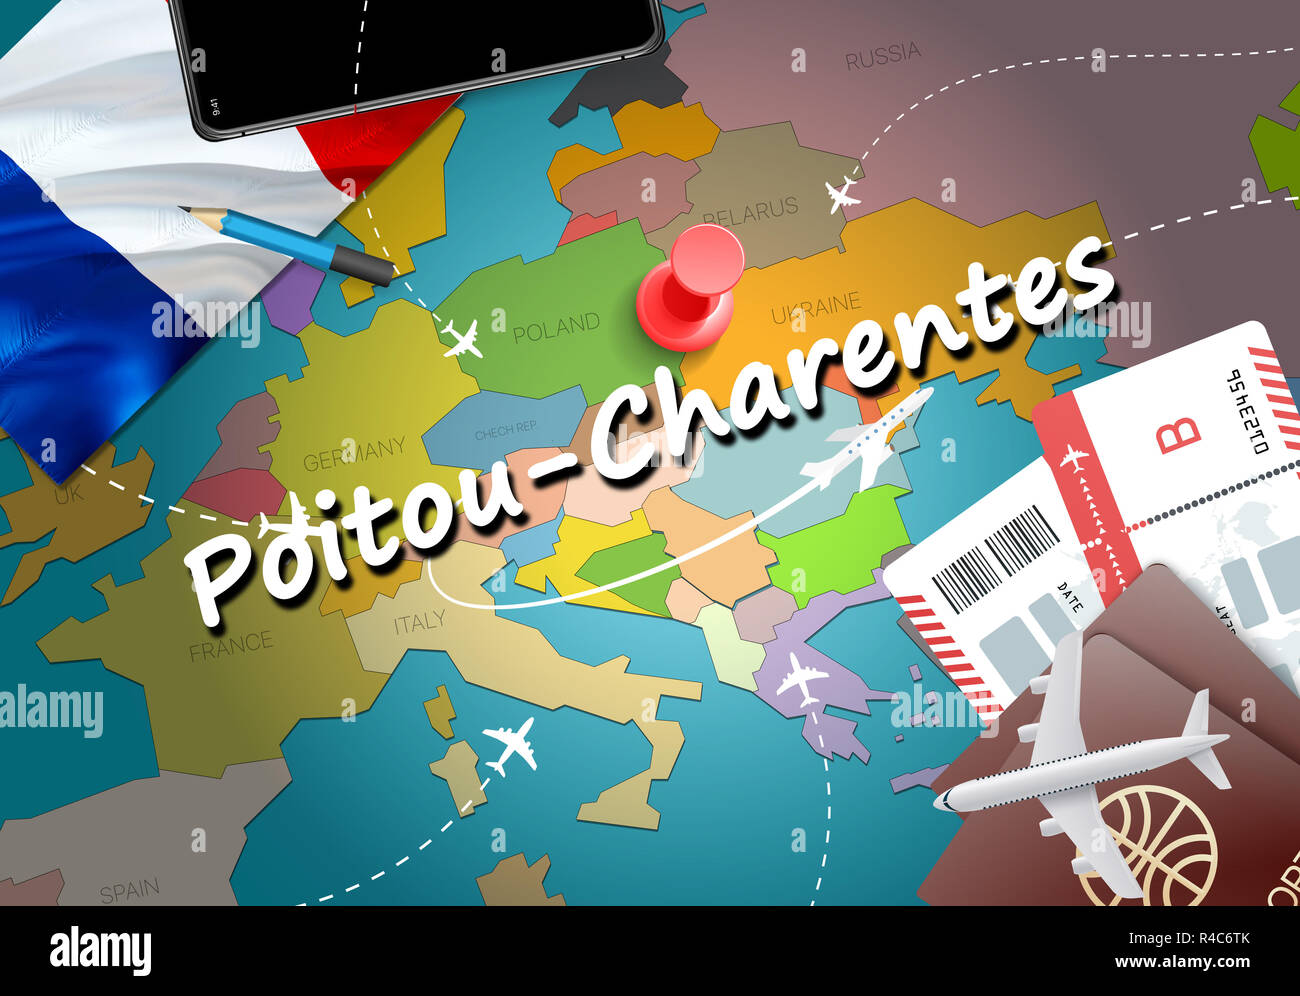 Poitou France Map.Poitou Charentes City Travel And Tourism Destination Concept France